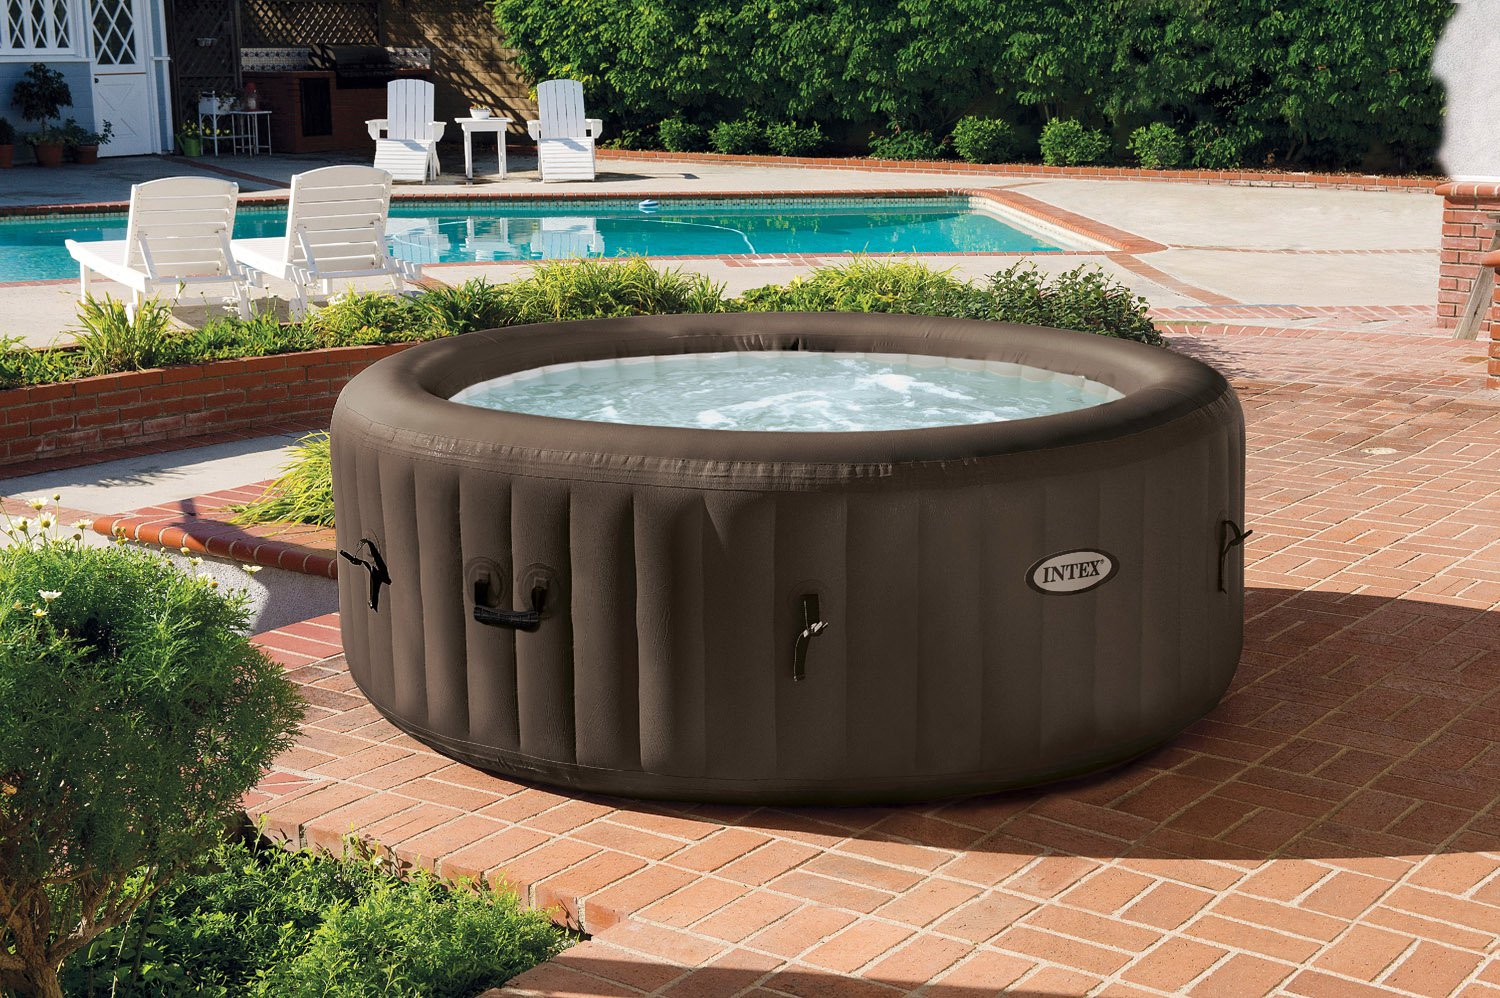 Intex Pure Spa 4-Person Inflatable Portable Heated Jet Massage Hot Tub | 28423E by Intex